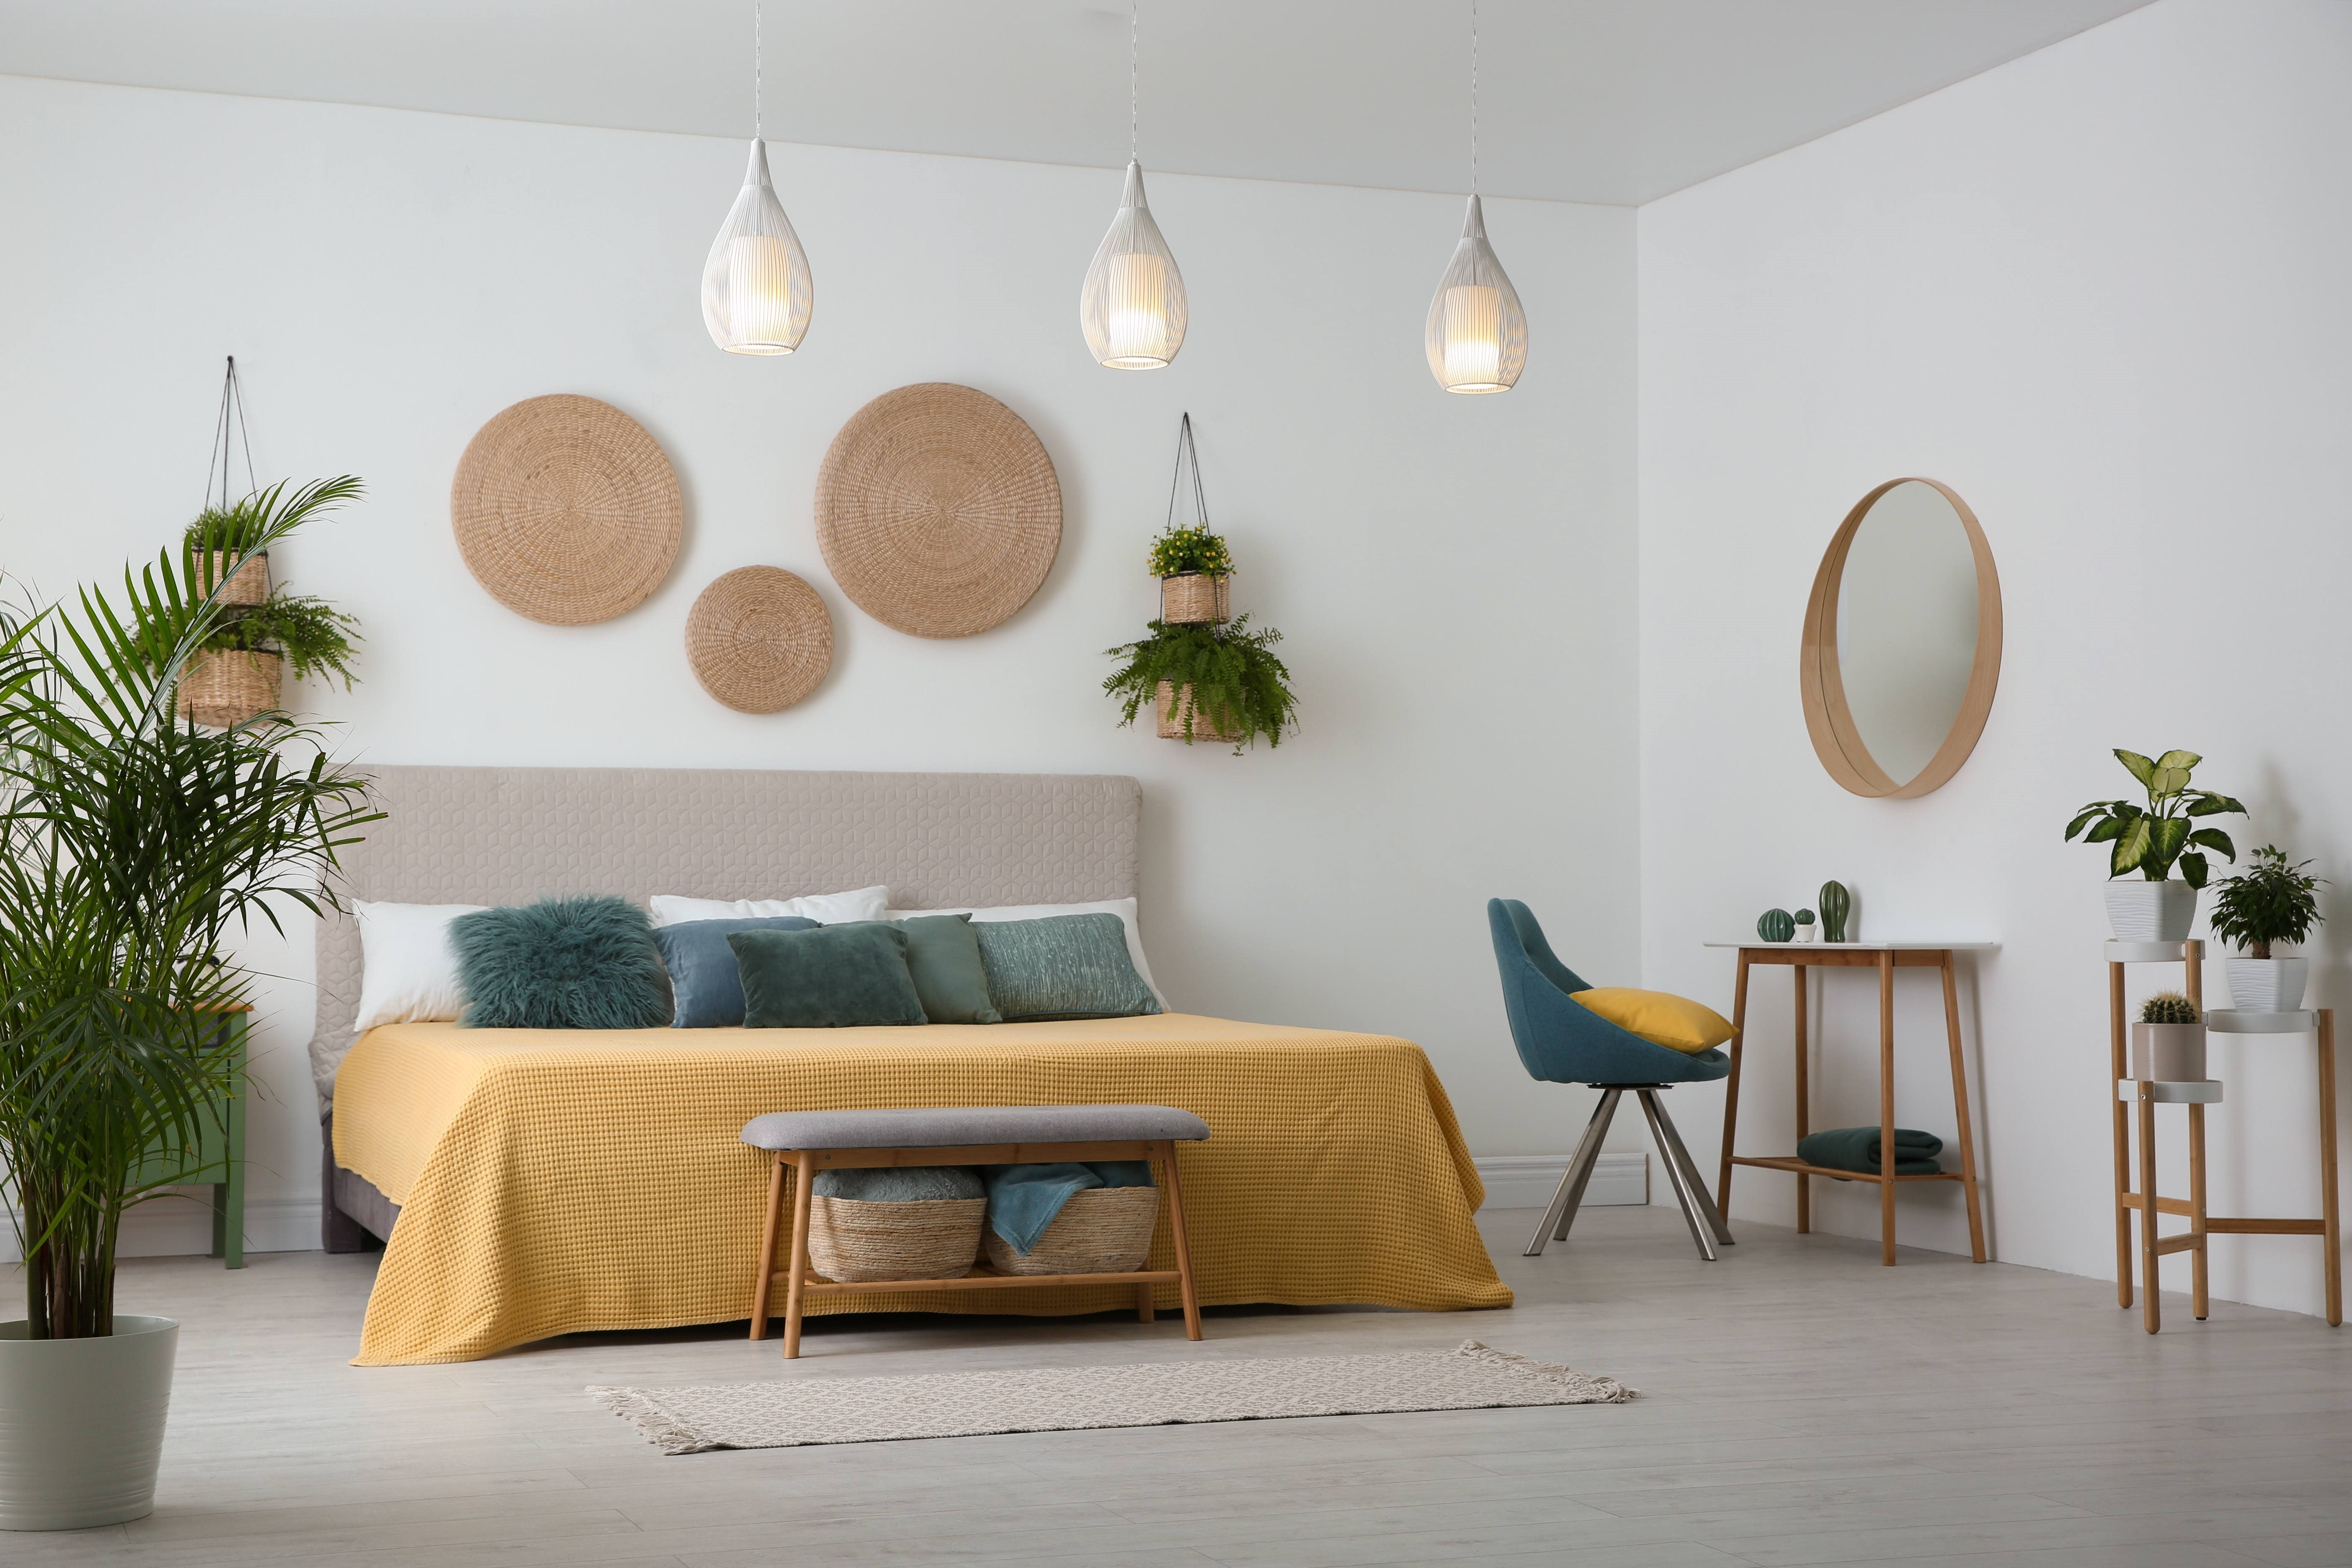 Bedroom with hanging lights, desk, plants and wall decor